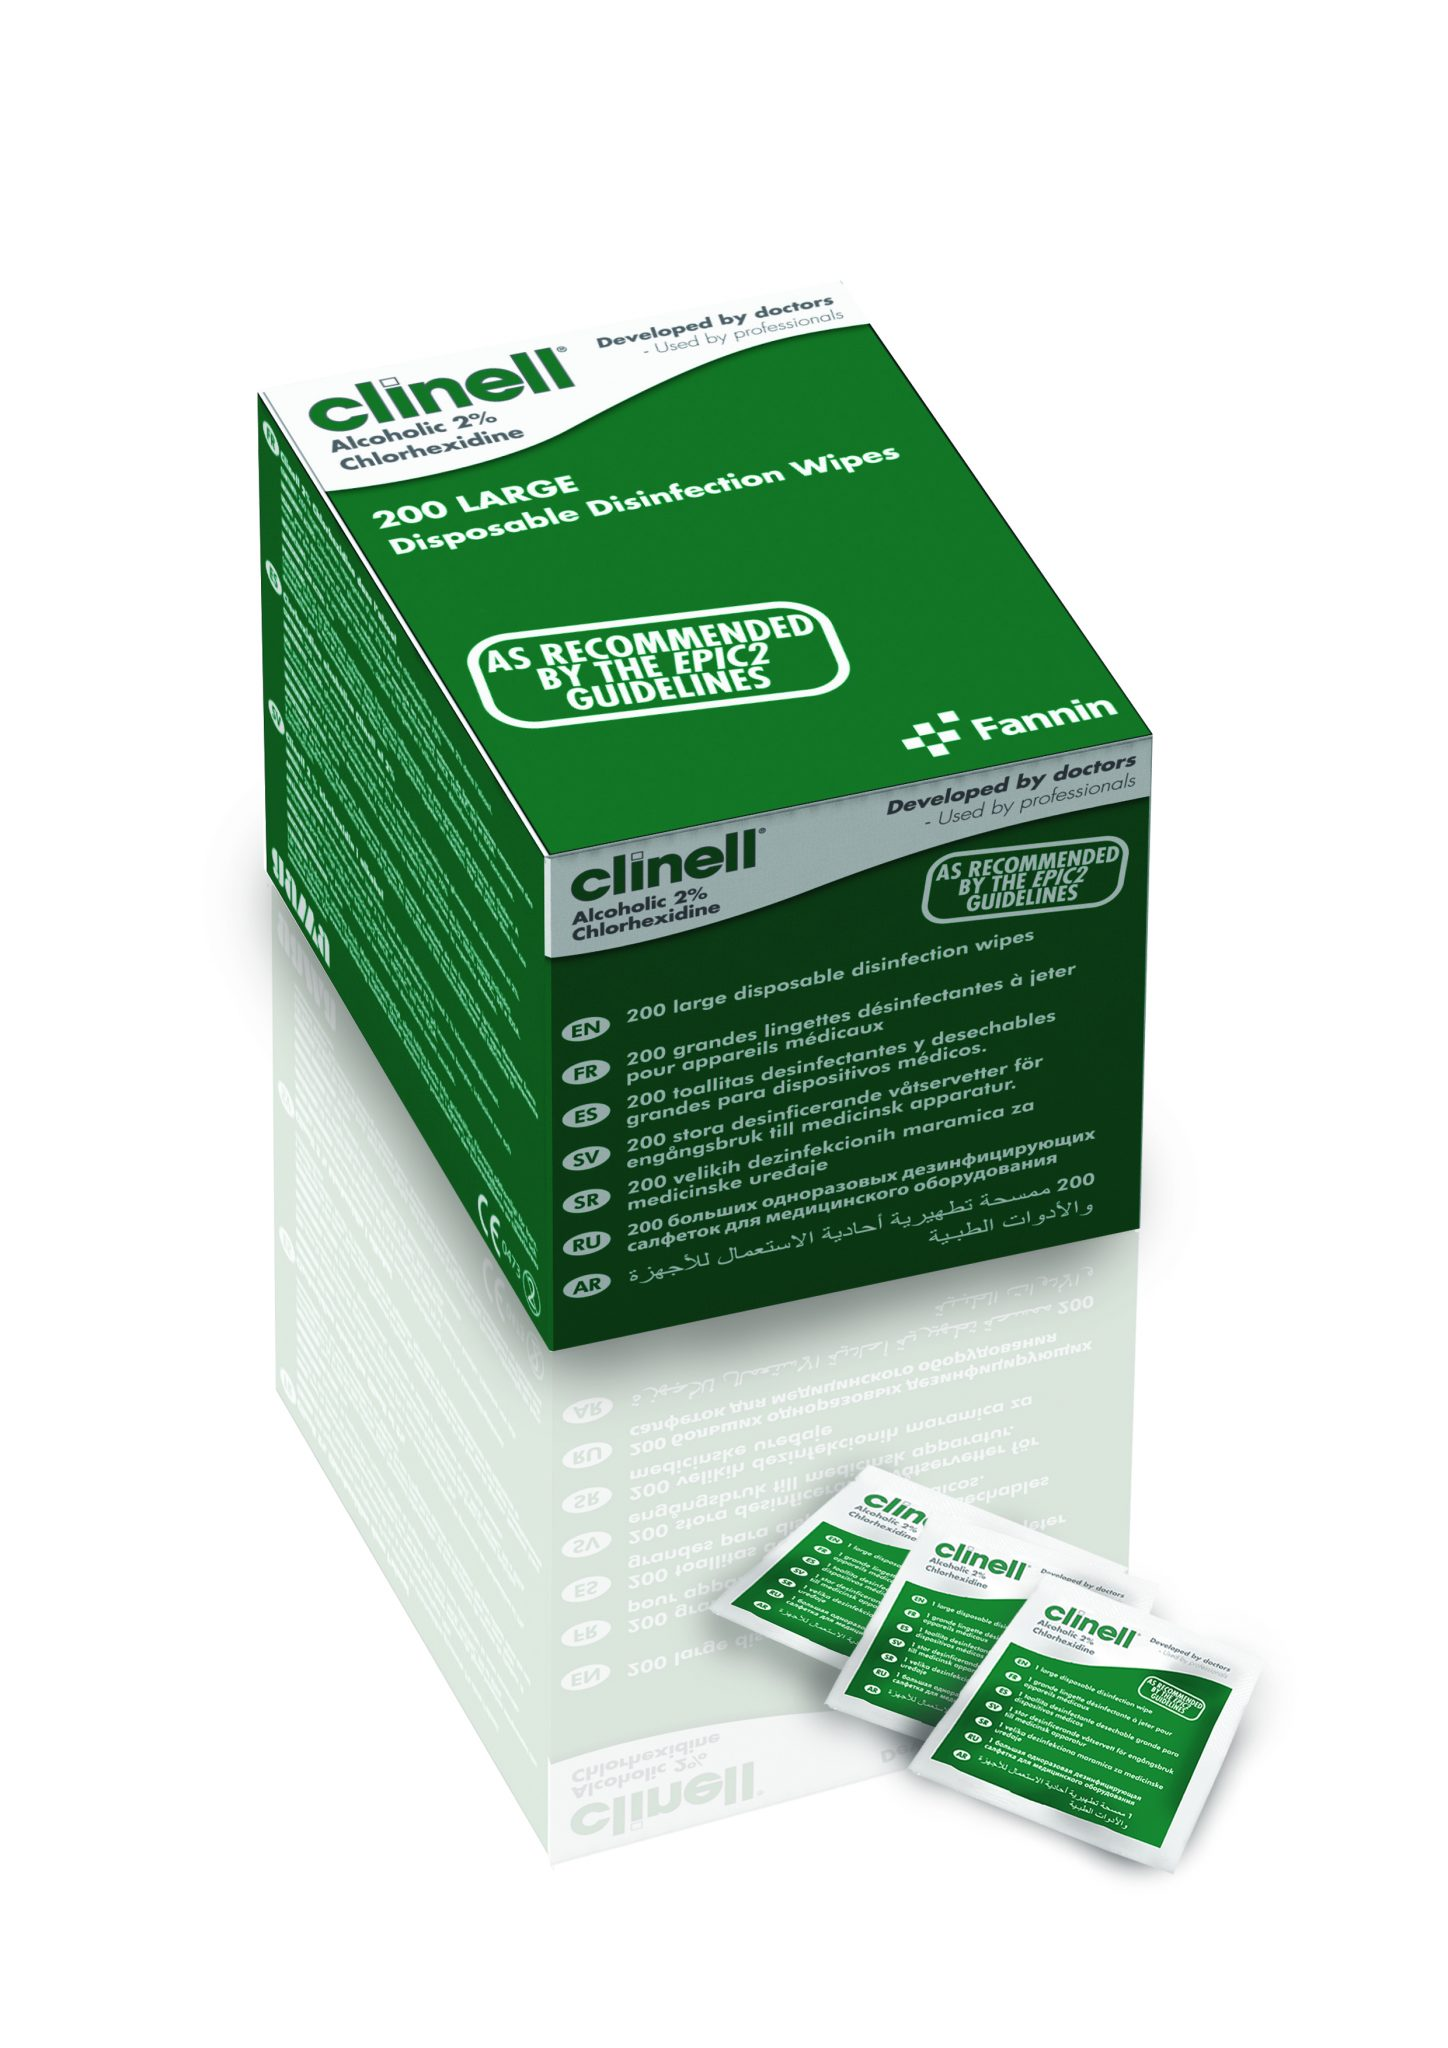 Clinell Alcoholic 2% Chlorhexidine Device Wipes image cover